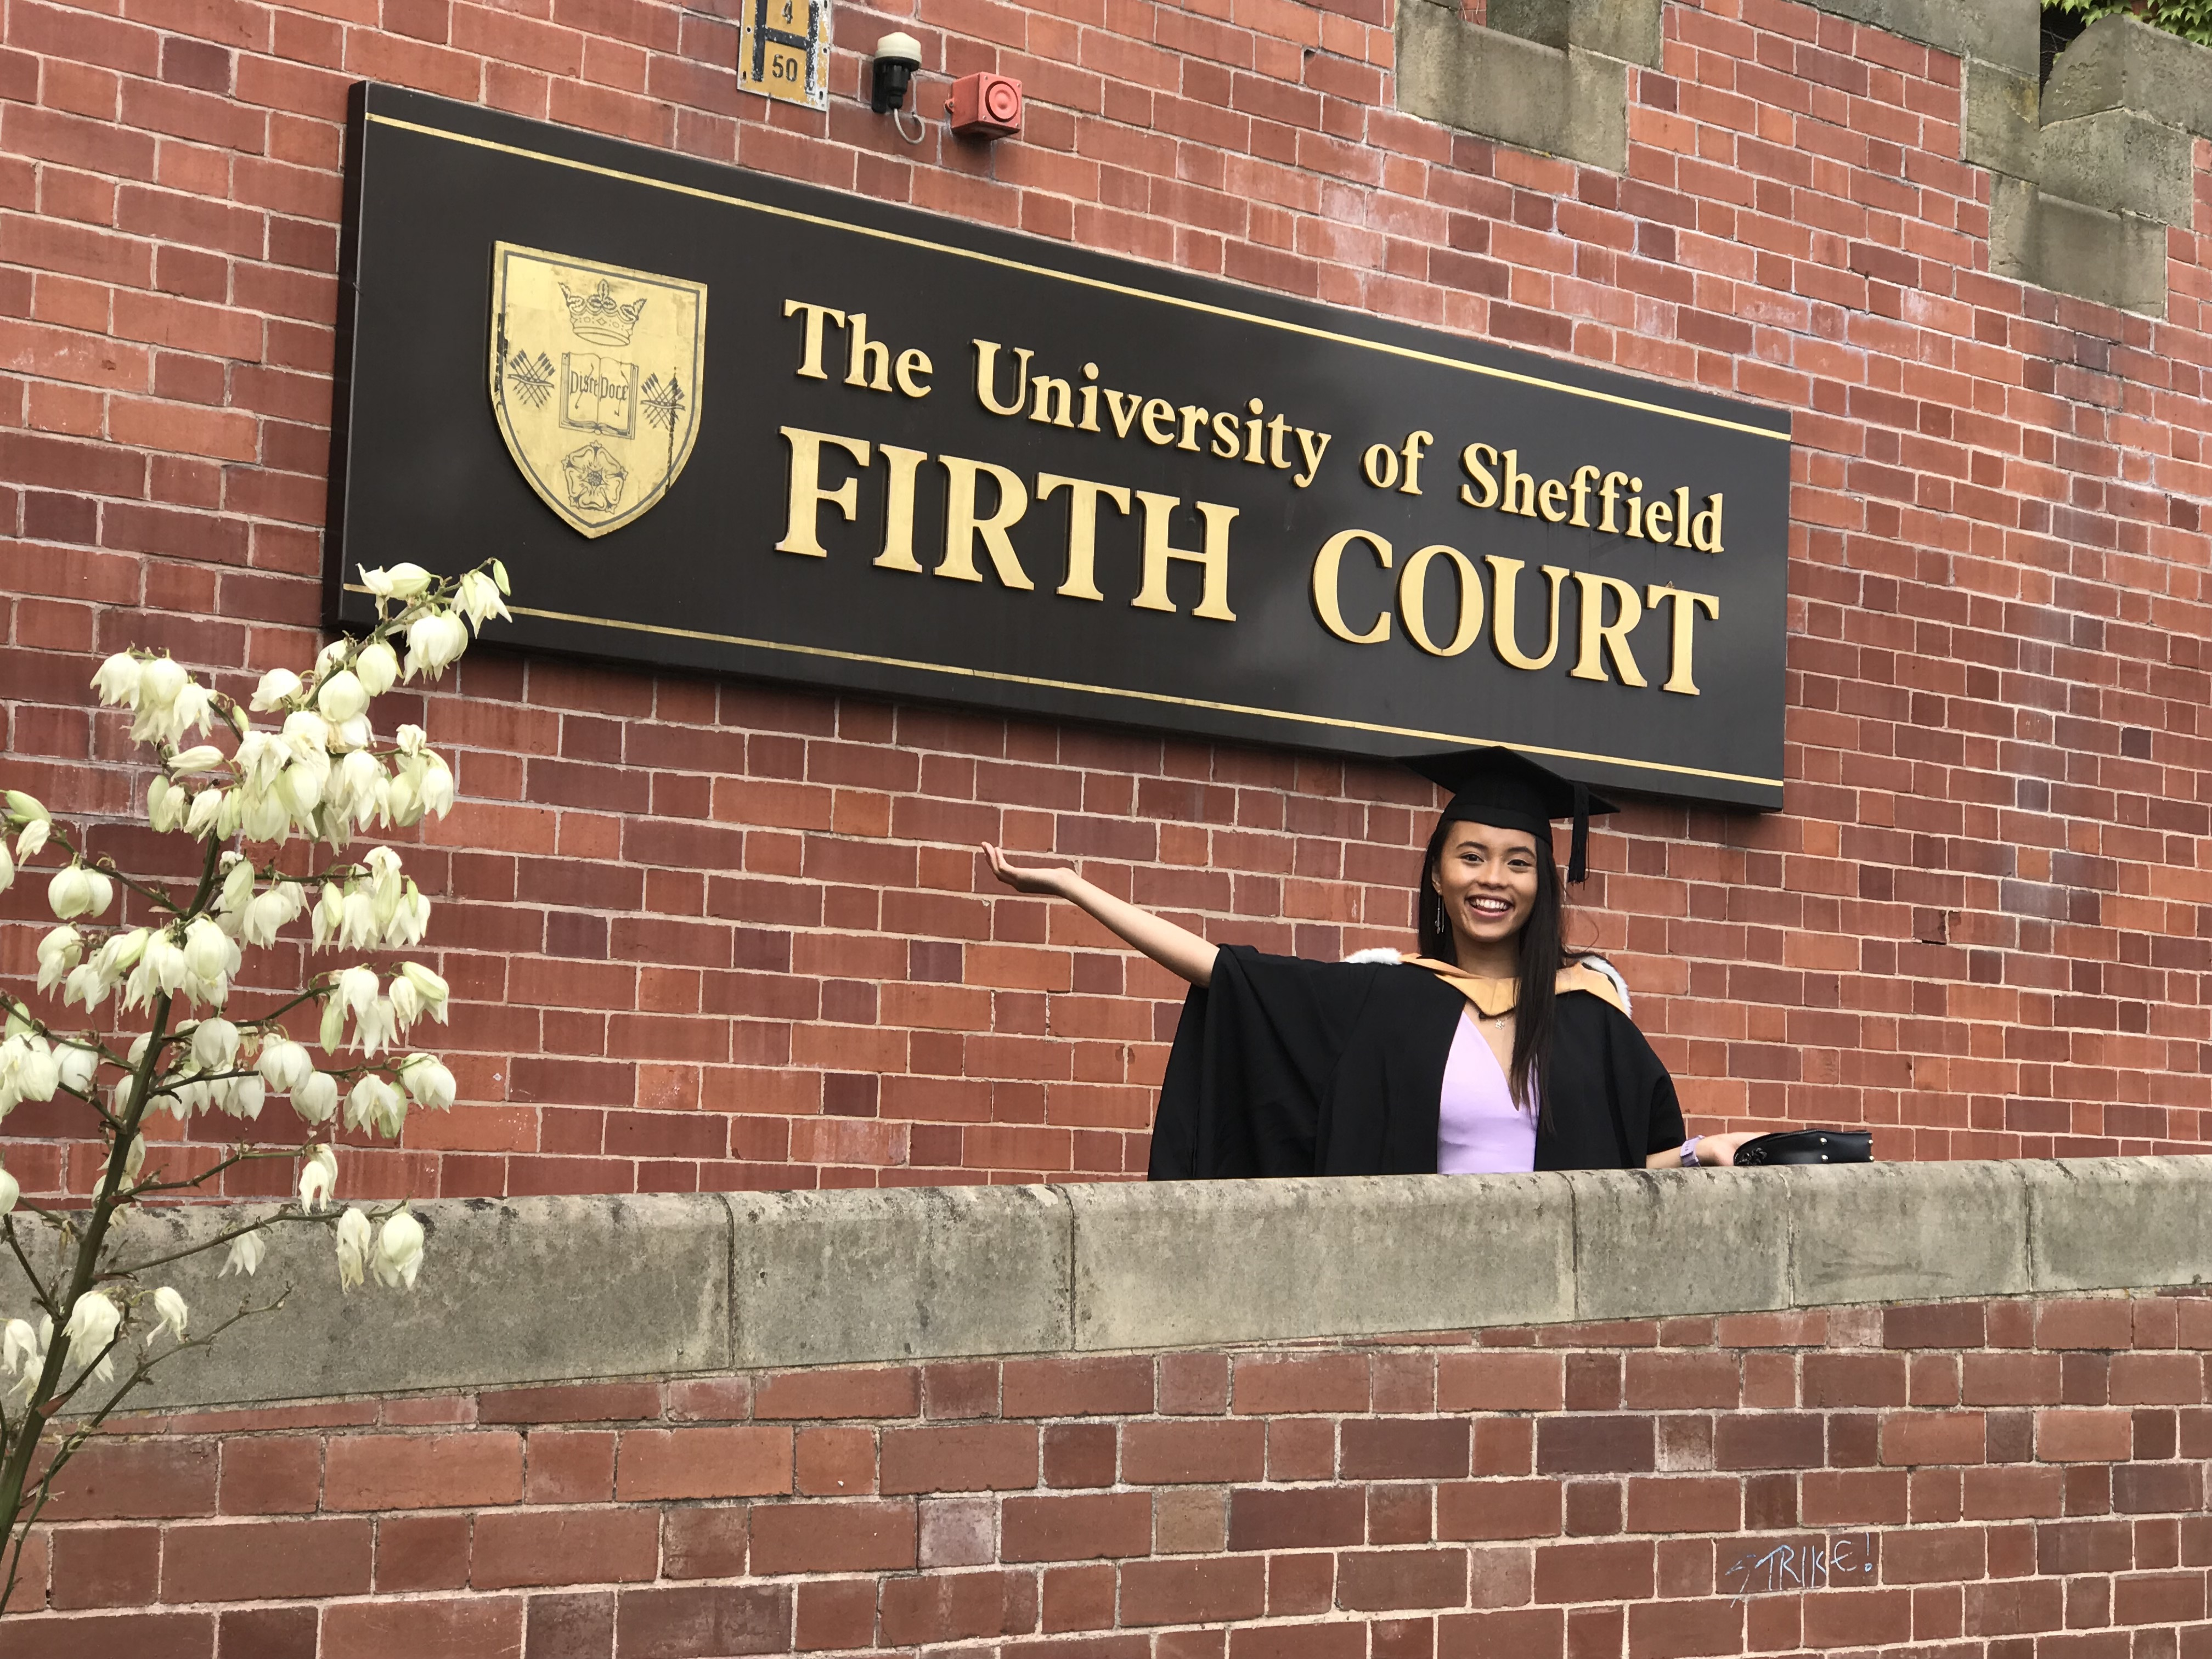 Outside of Firth Court, The University of Sheffield as an official graduate